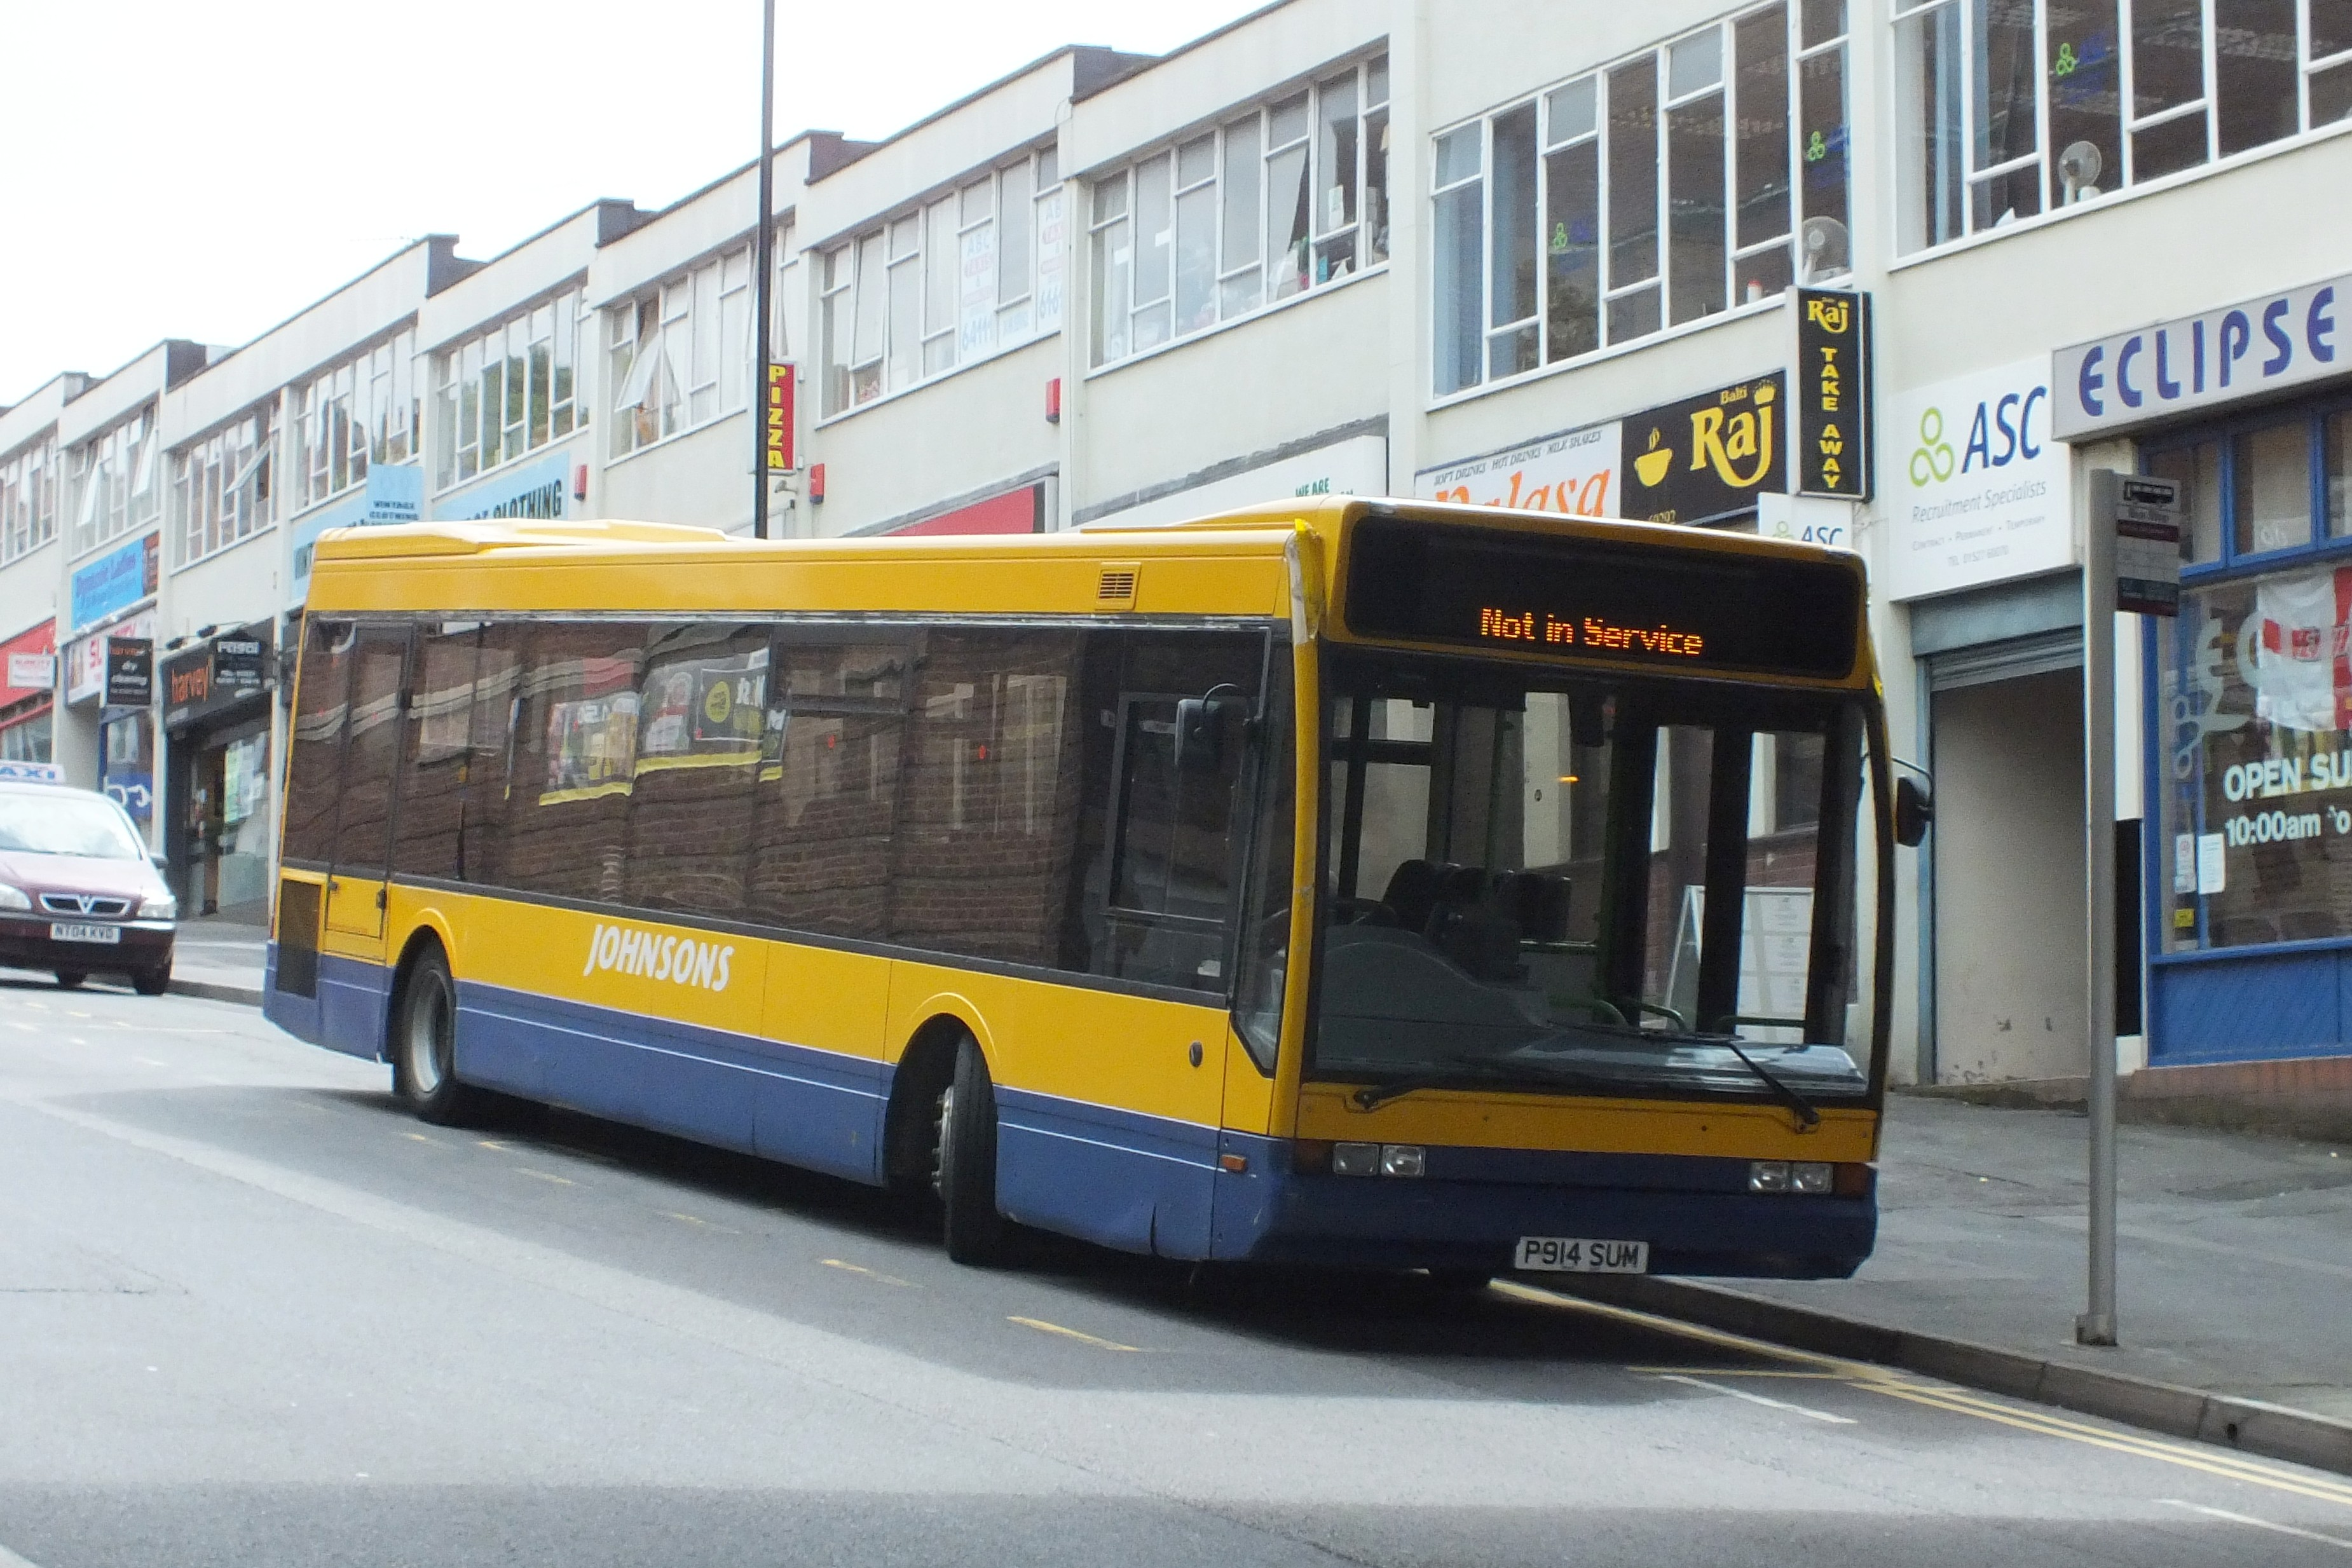 June 15 2012 Redditch 024.jpg